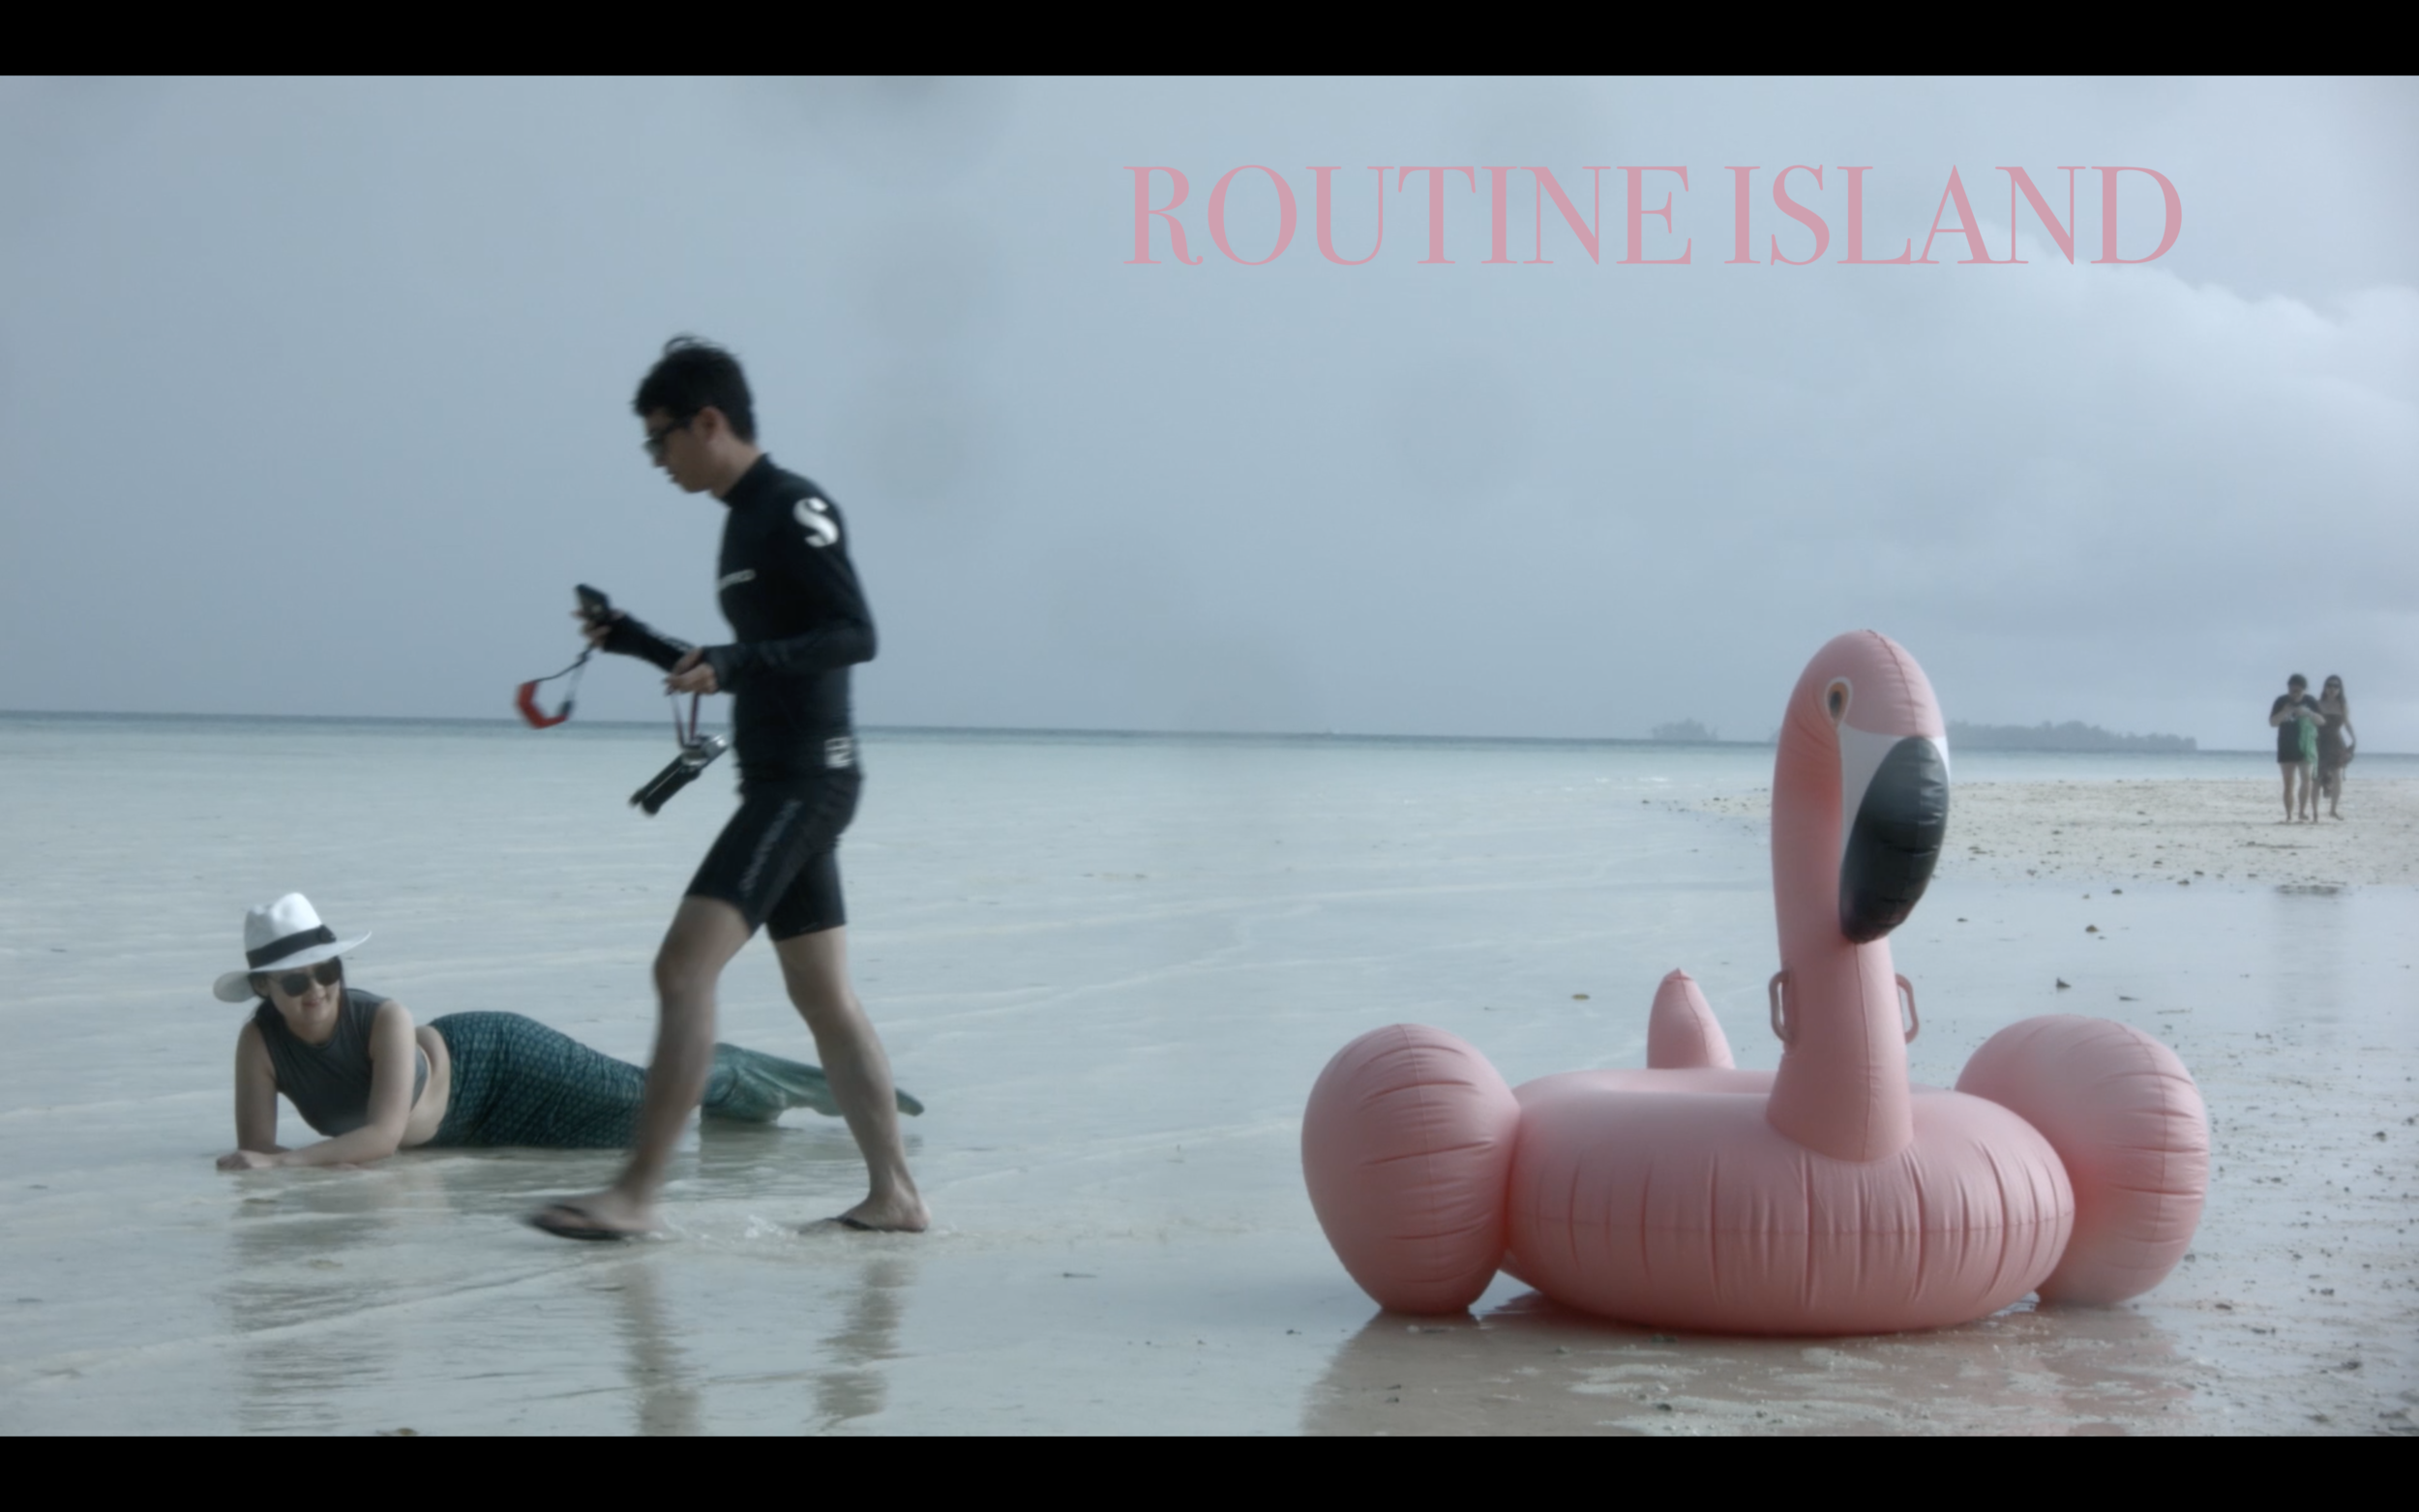 Routine Island image.png